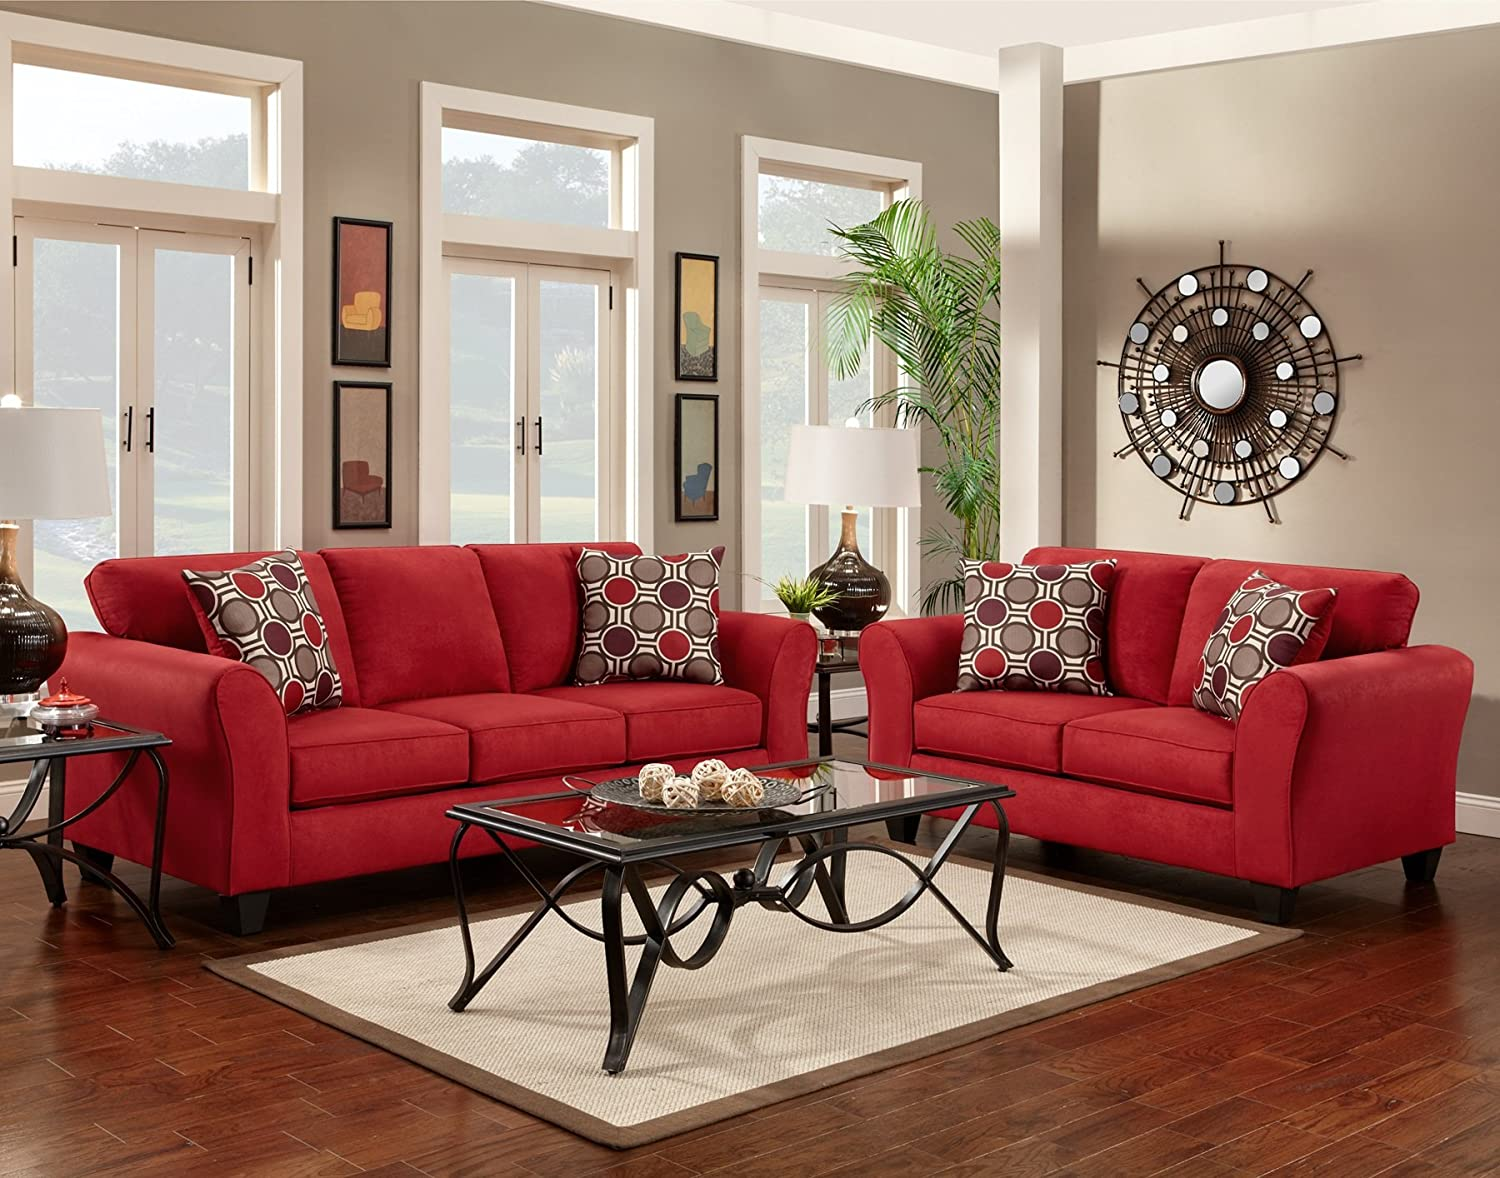 Roundhill Furniture Microfiber Loveseat with 2 Pillows - Patriot Red